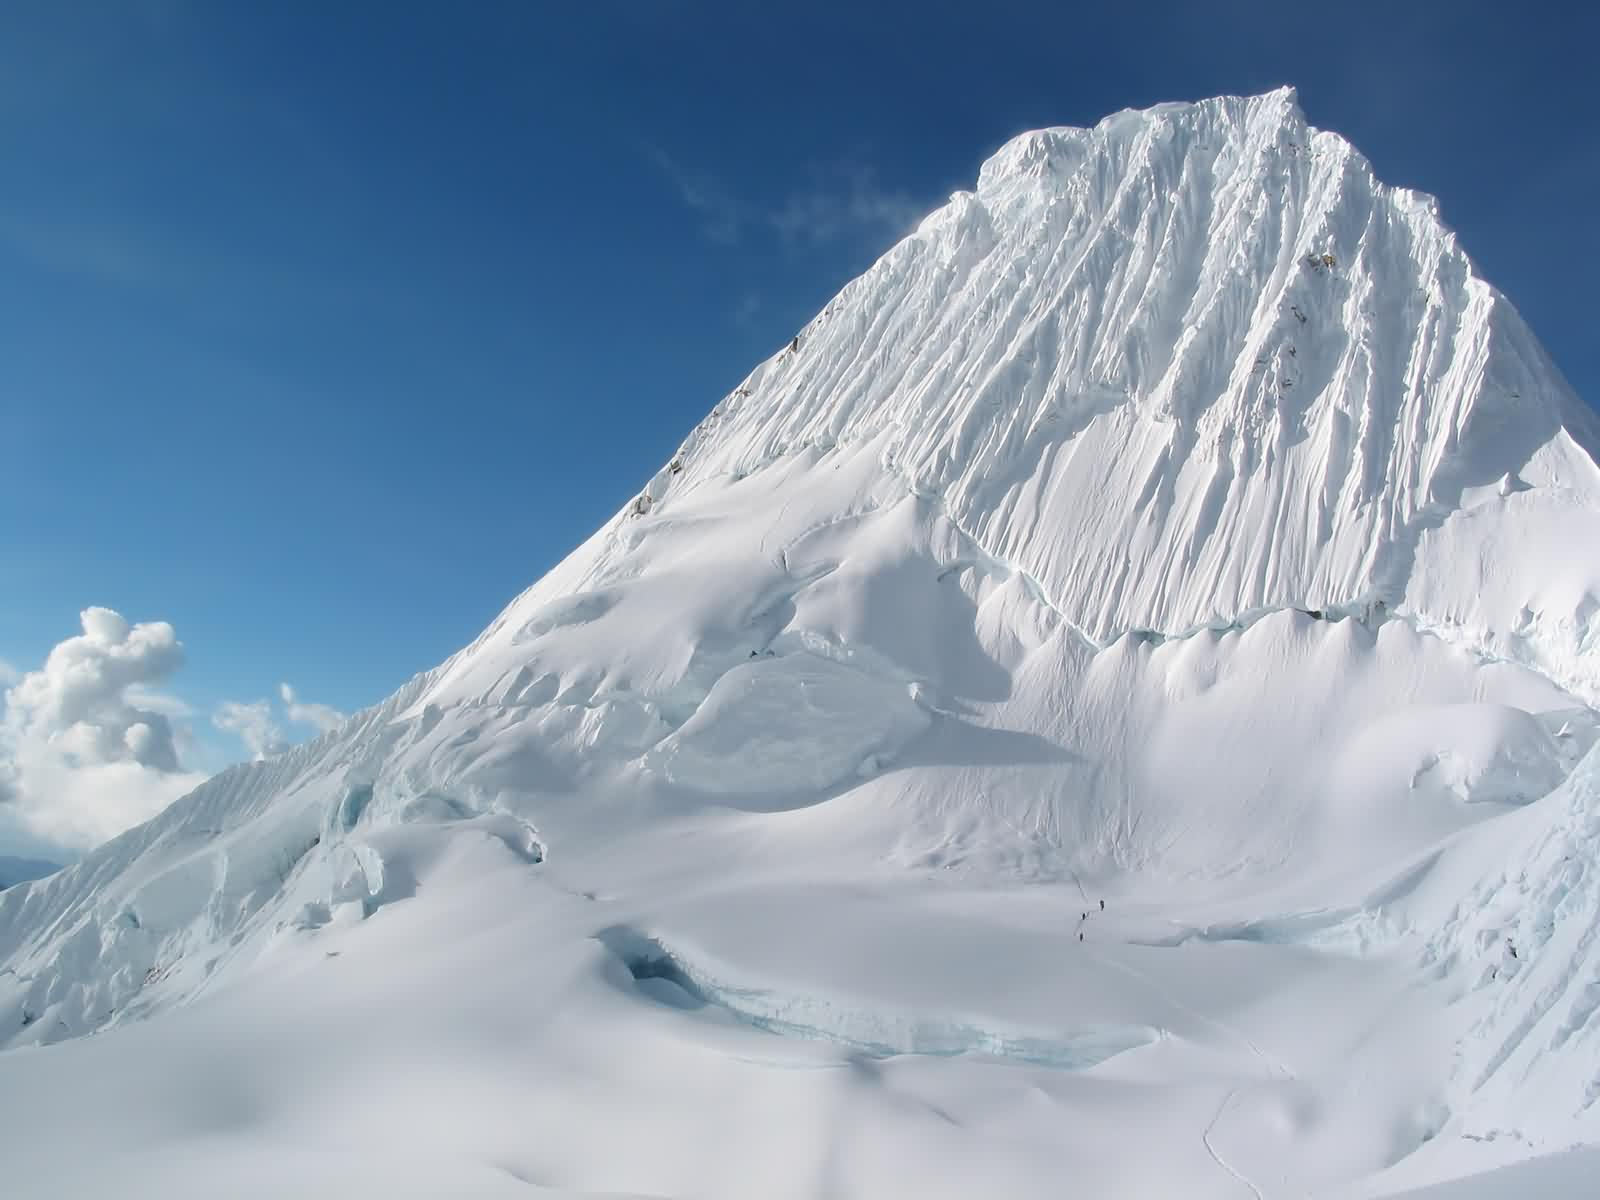 Snow Mountain HD Wallpapers